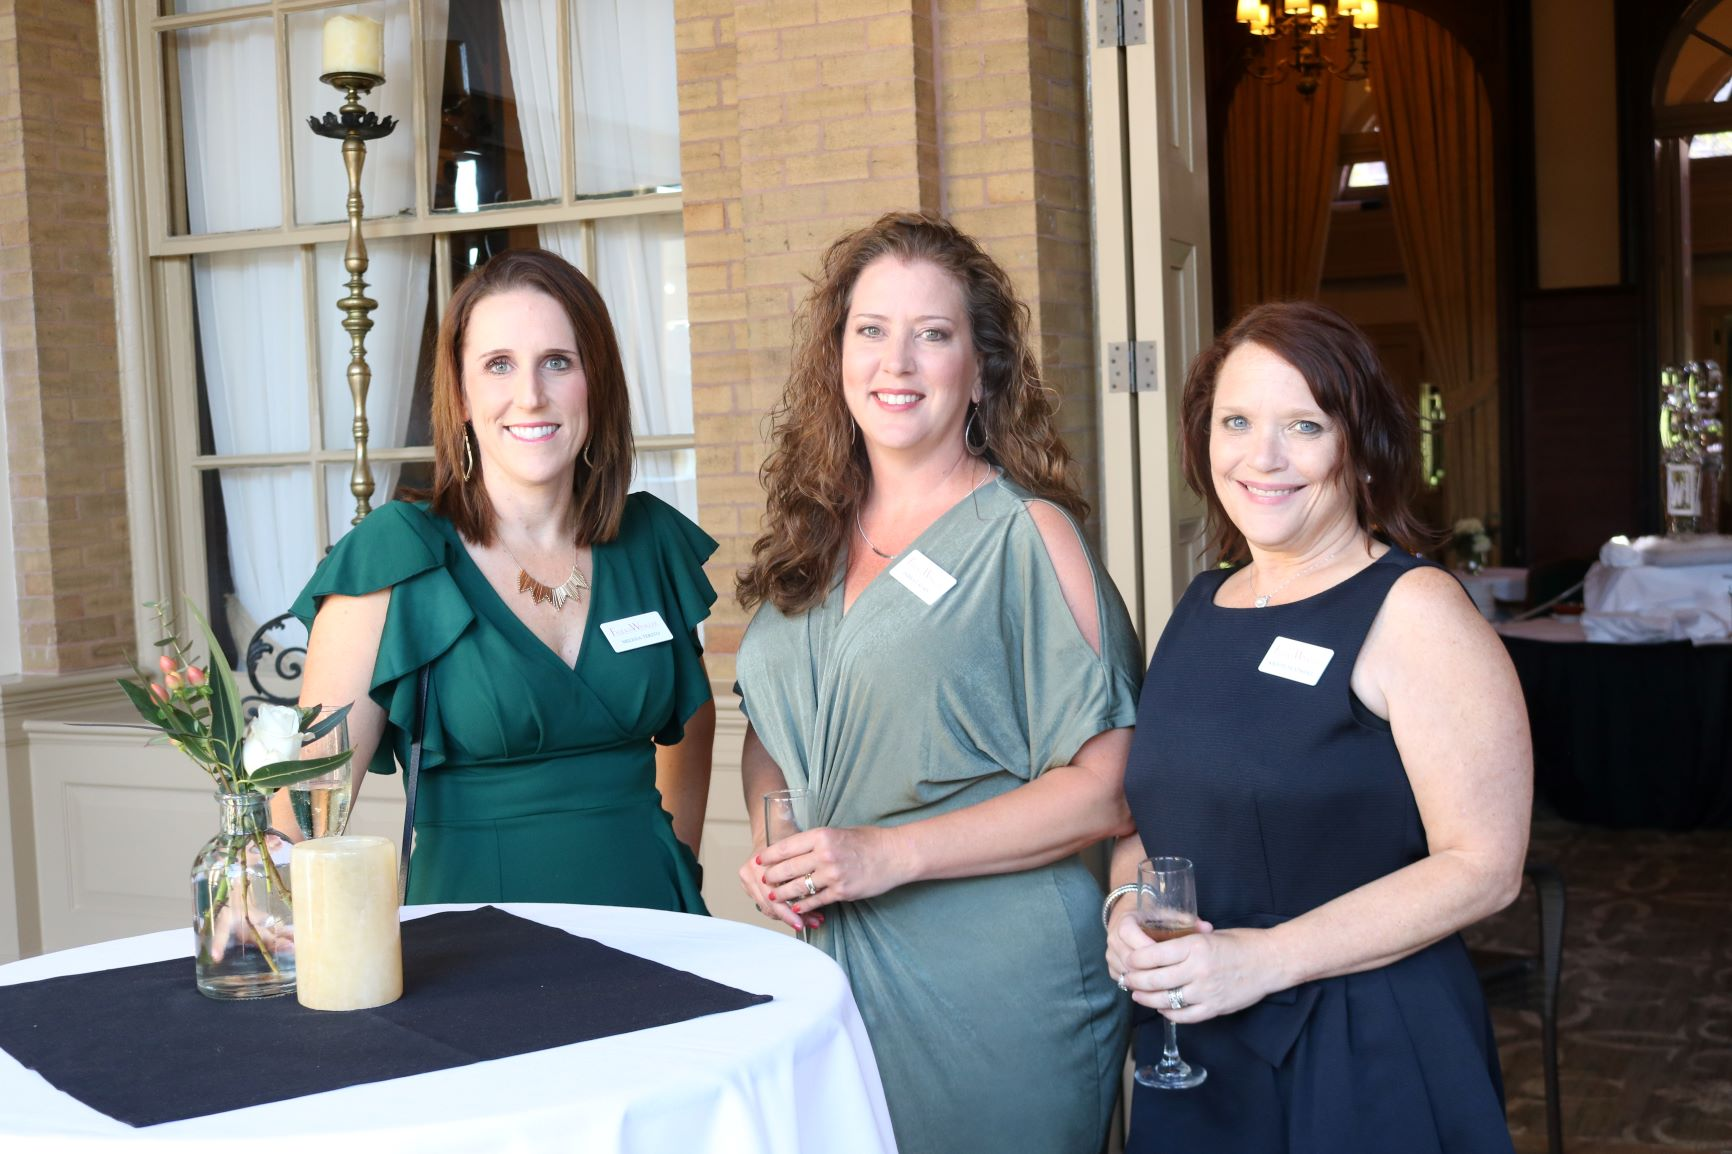 Faulk & Winkler celebrated 35 years of service this May! Melissa, Debra, and Kristie are pictured at the anniversary celebration.